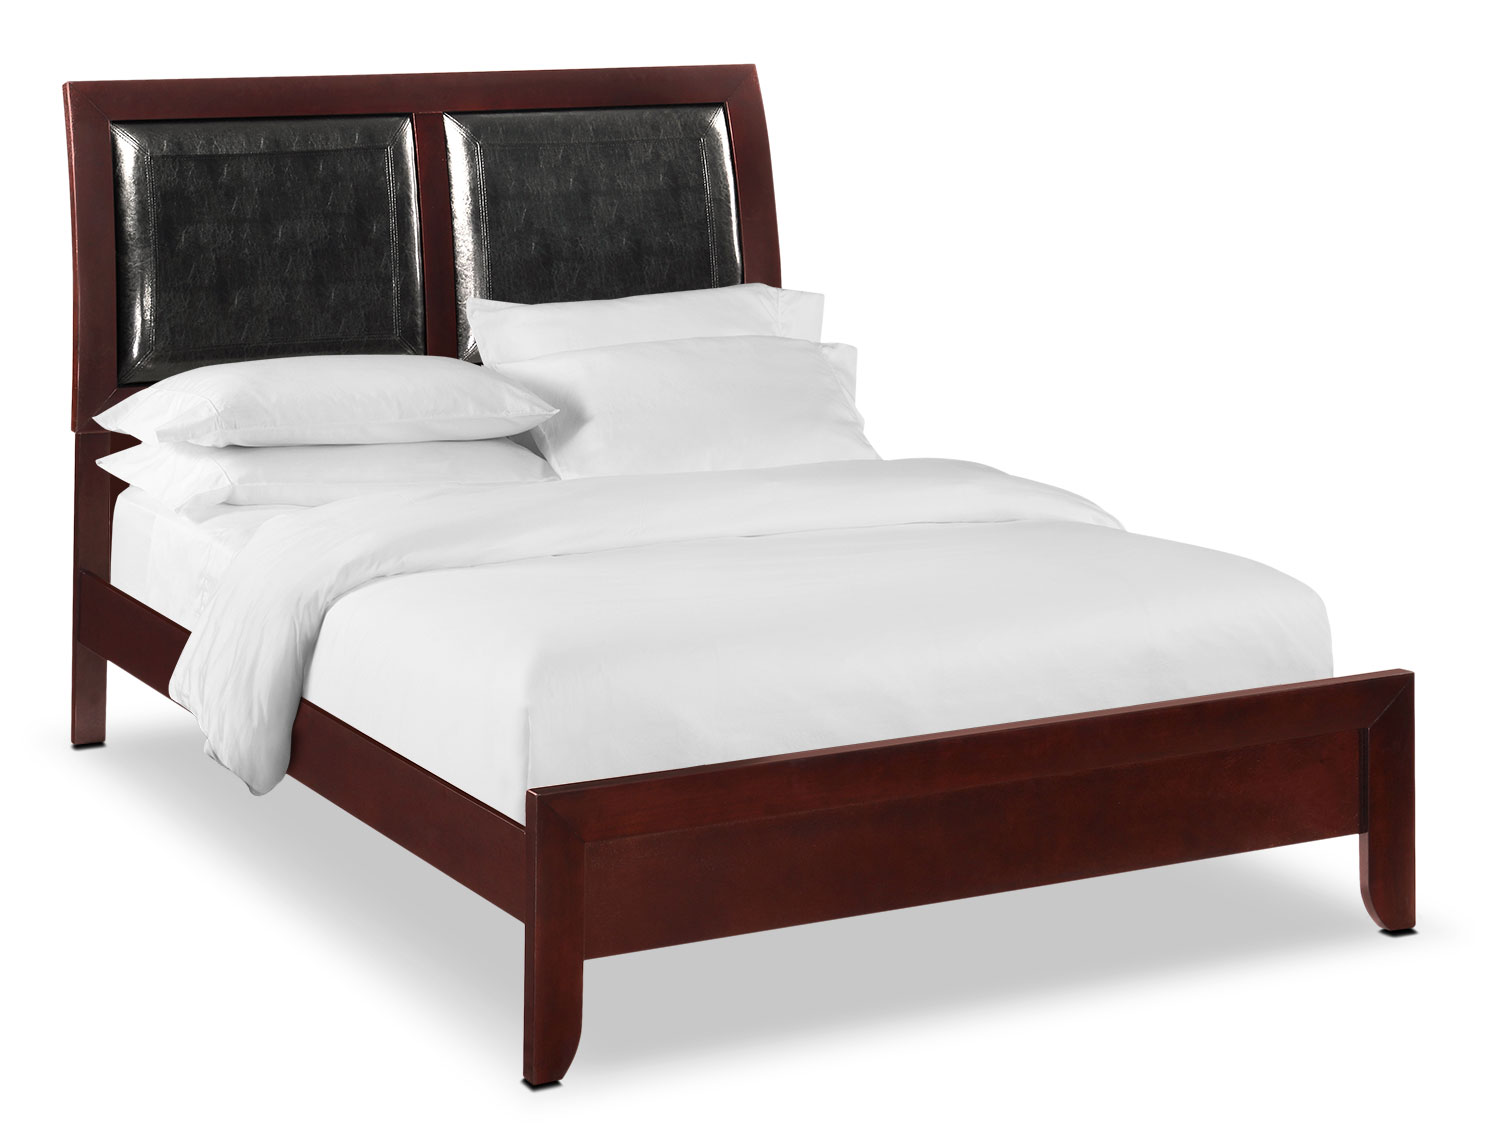 Braden Queen Upholstered Bed - Merlot